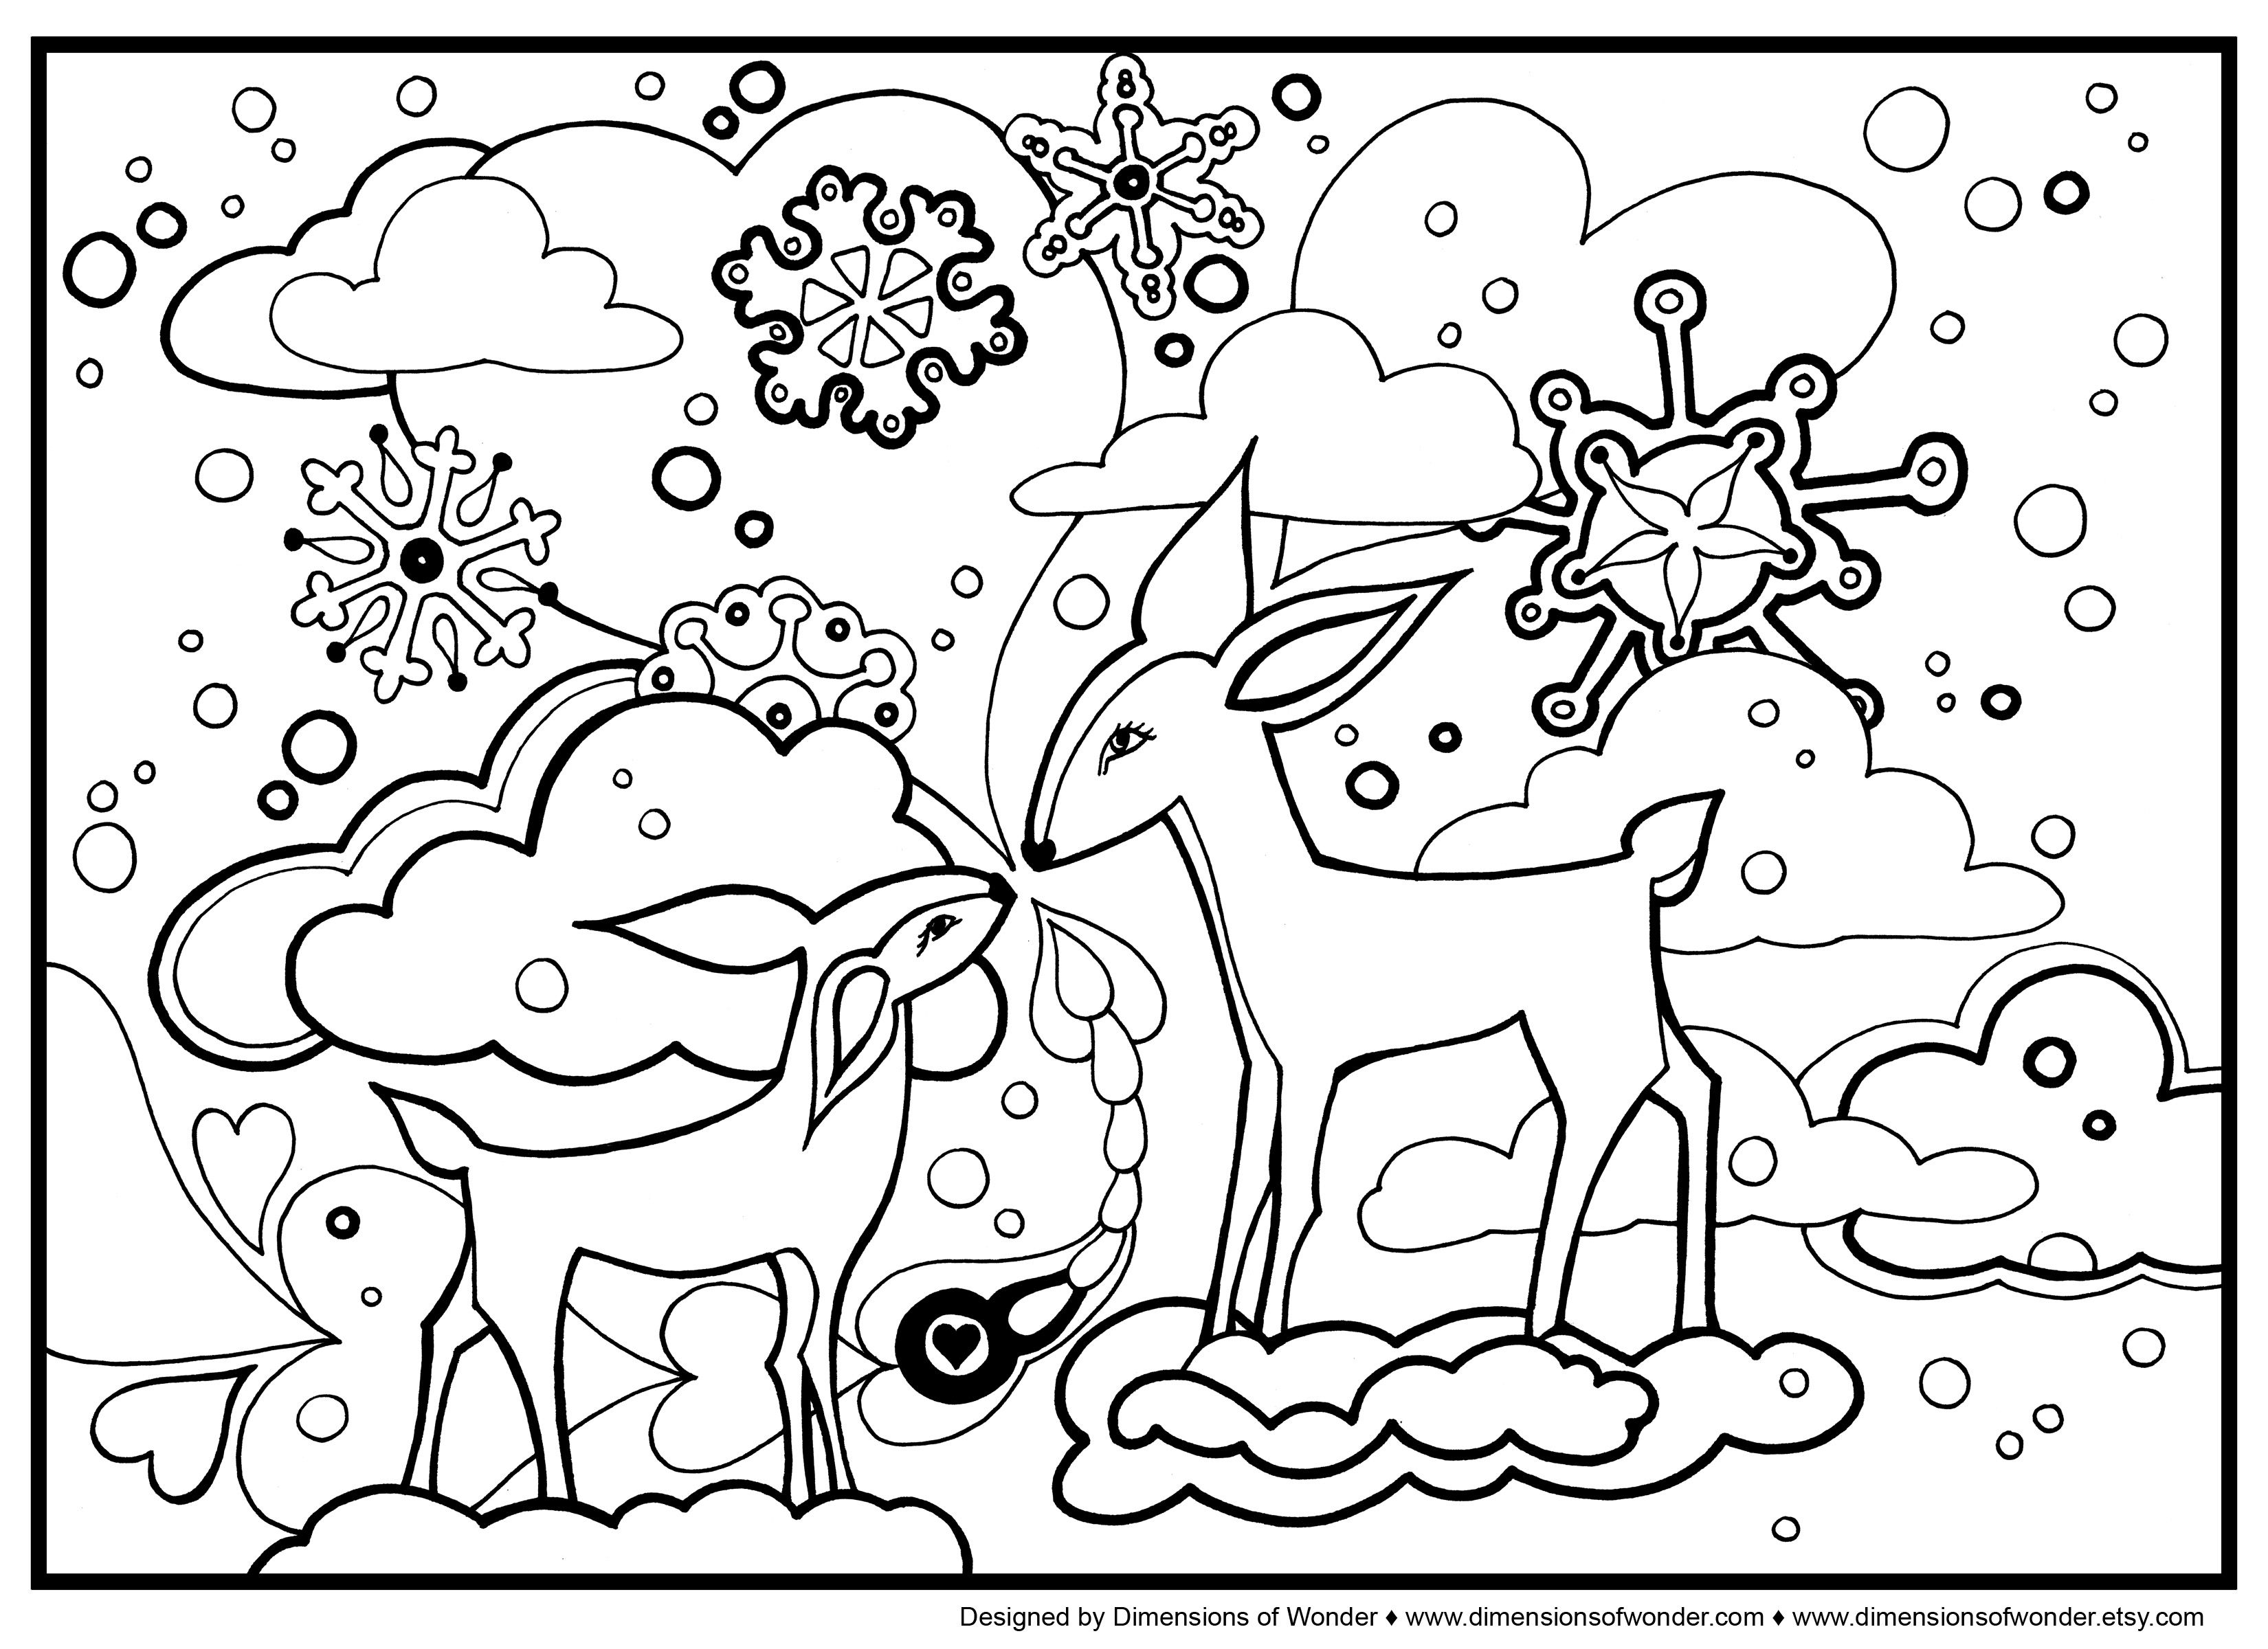 winter coloring pages cool winter coloring pages christmas coloring animal coloring pages. Black Bedroom Furniture Sets. Home Design Ideas